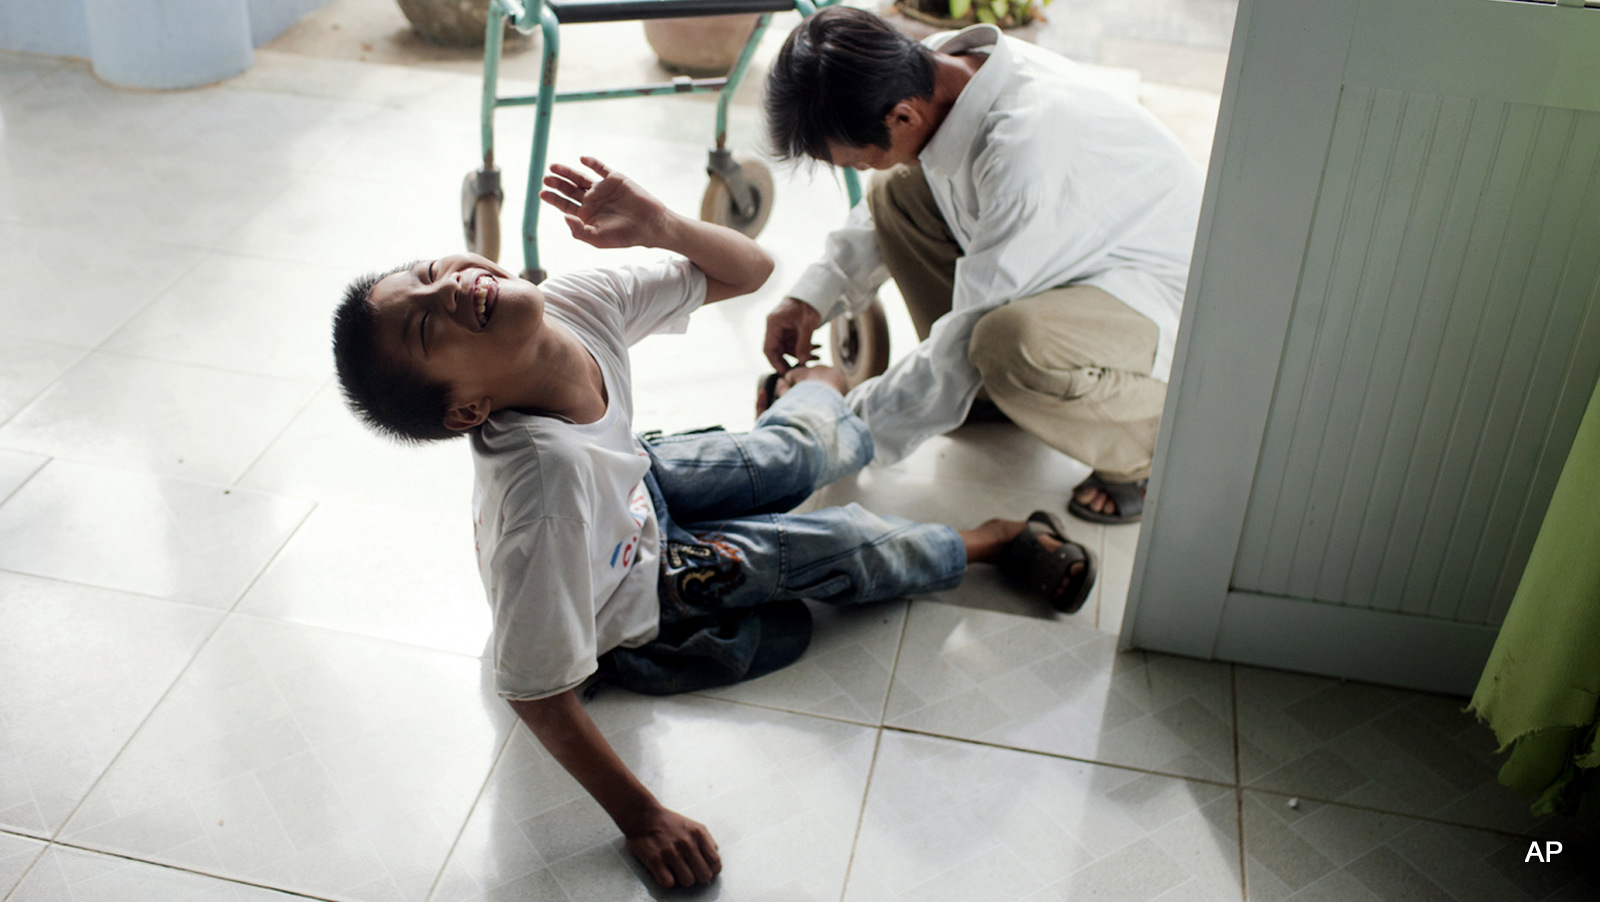 In this photo taken on Wednesday, Aug. 8, 2012, Le Van Tam, 14, is picked up by his father at a rehabilitation center in Danang, Vietnam. The children were born with physical and mental disabilities that the center's director says were caused by their parents' exposure to the chemical dioxin in the defoliant Agent Orange. On Thursday, the U.S. for the first time will begin cleaning up leftover dioxin that was stored at the former military base that's now part of Danang's airport.  (AP Photo/Maika Elan)